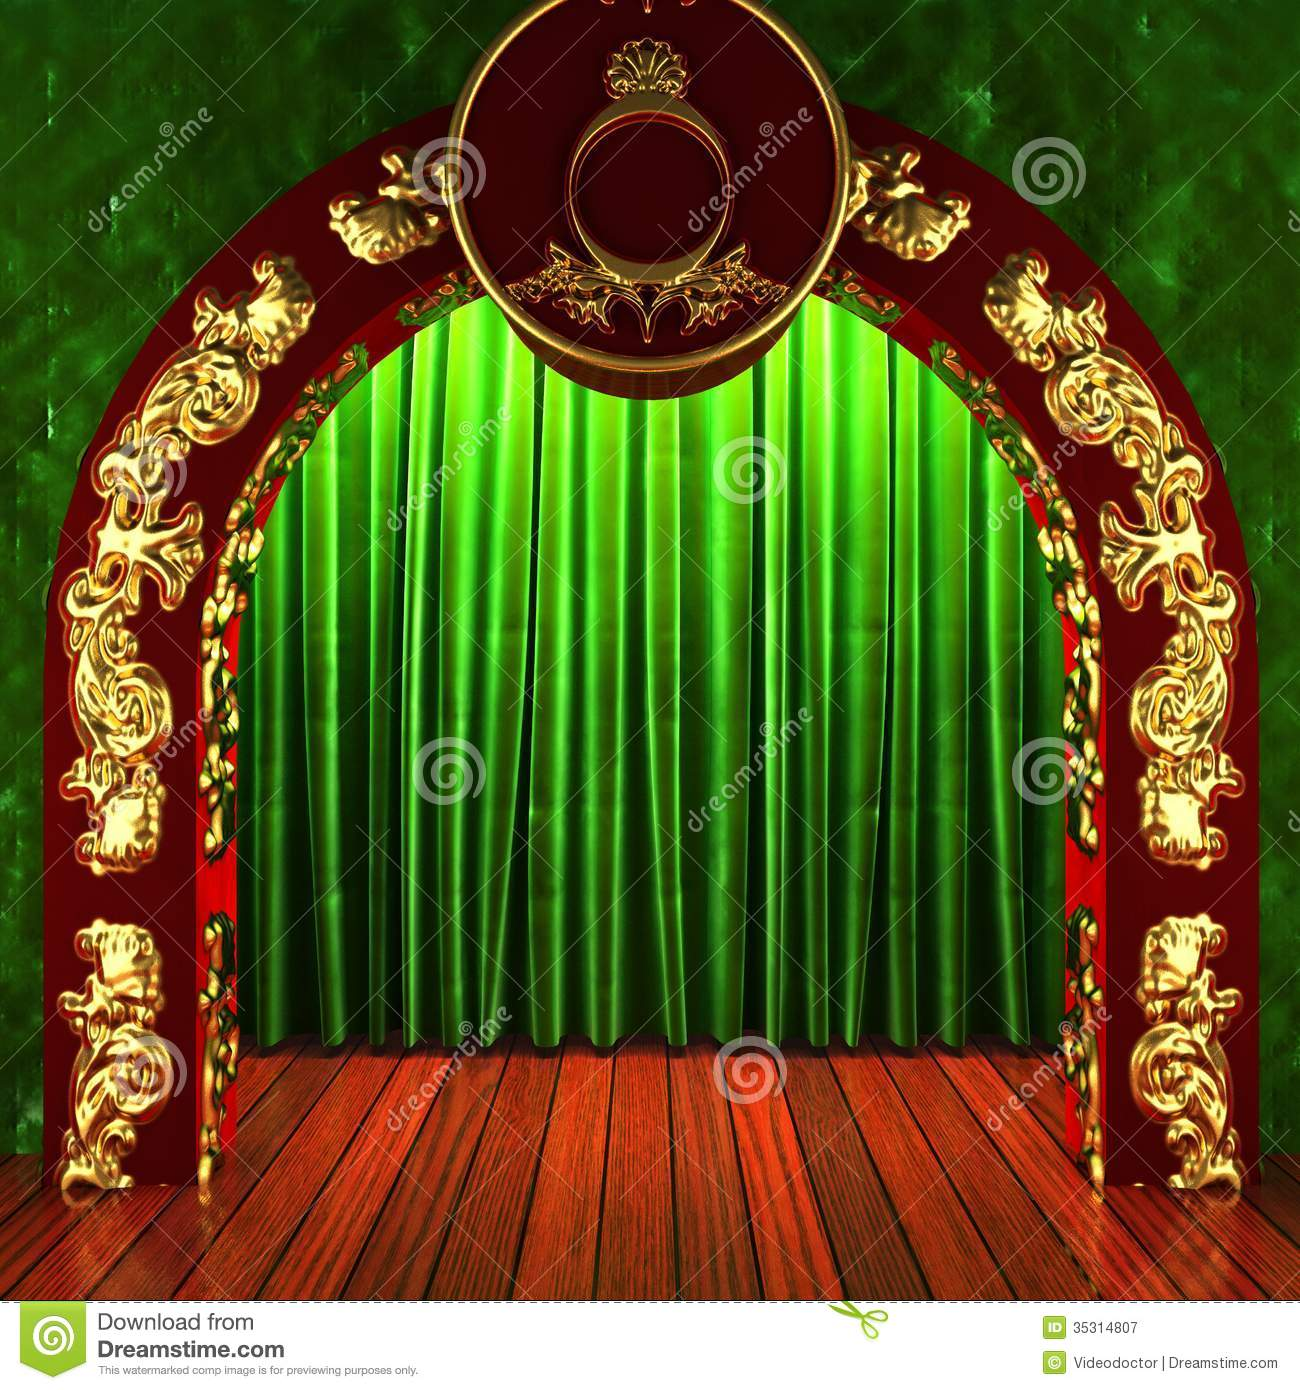 Gold stage curtain - Green Fabric Curtain With Gold On Stage Royalty Free Stock Photography